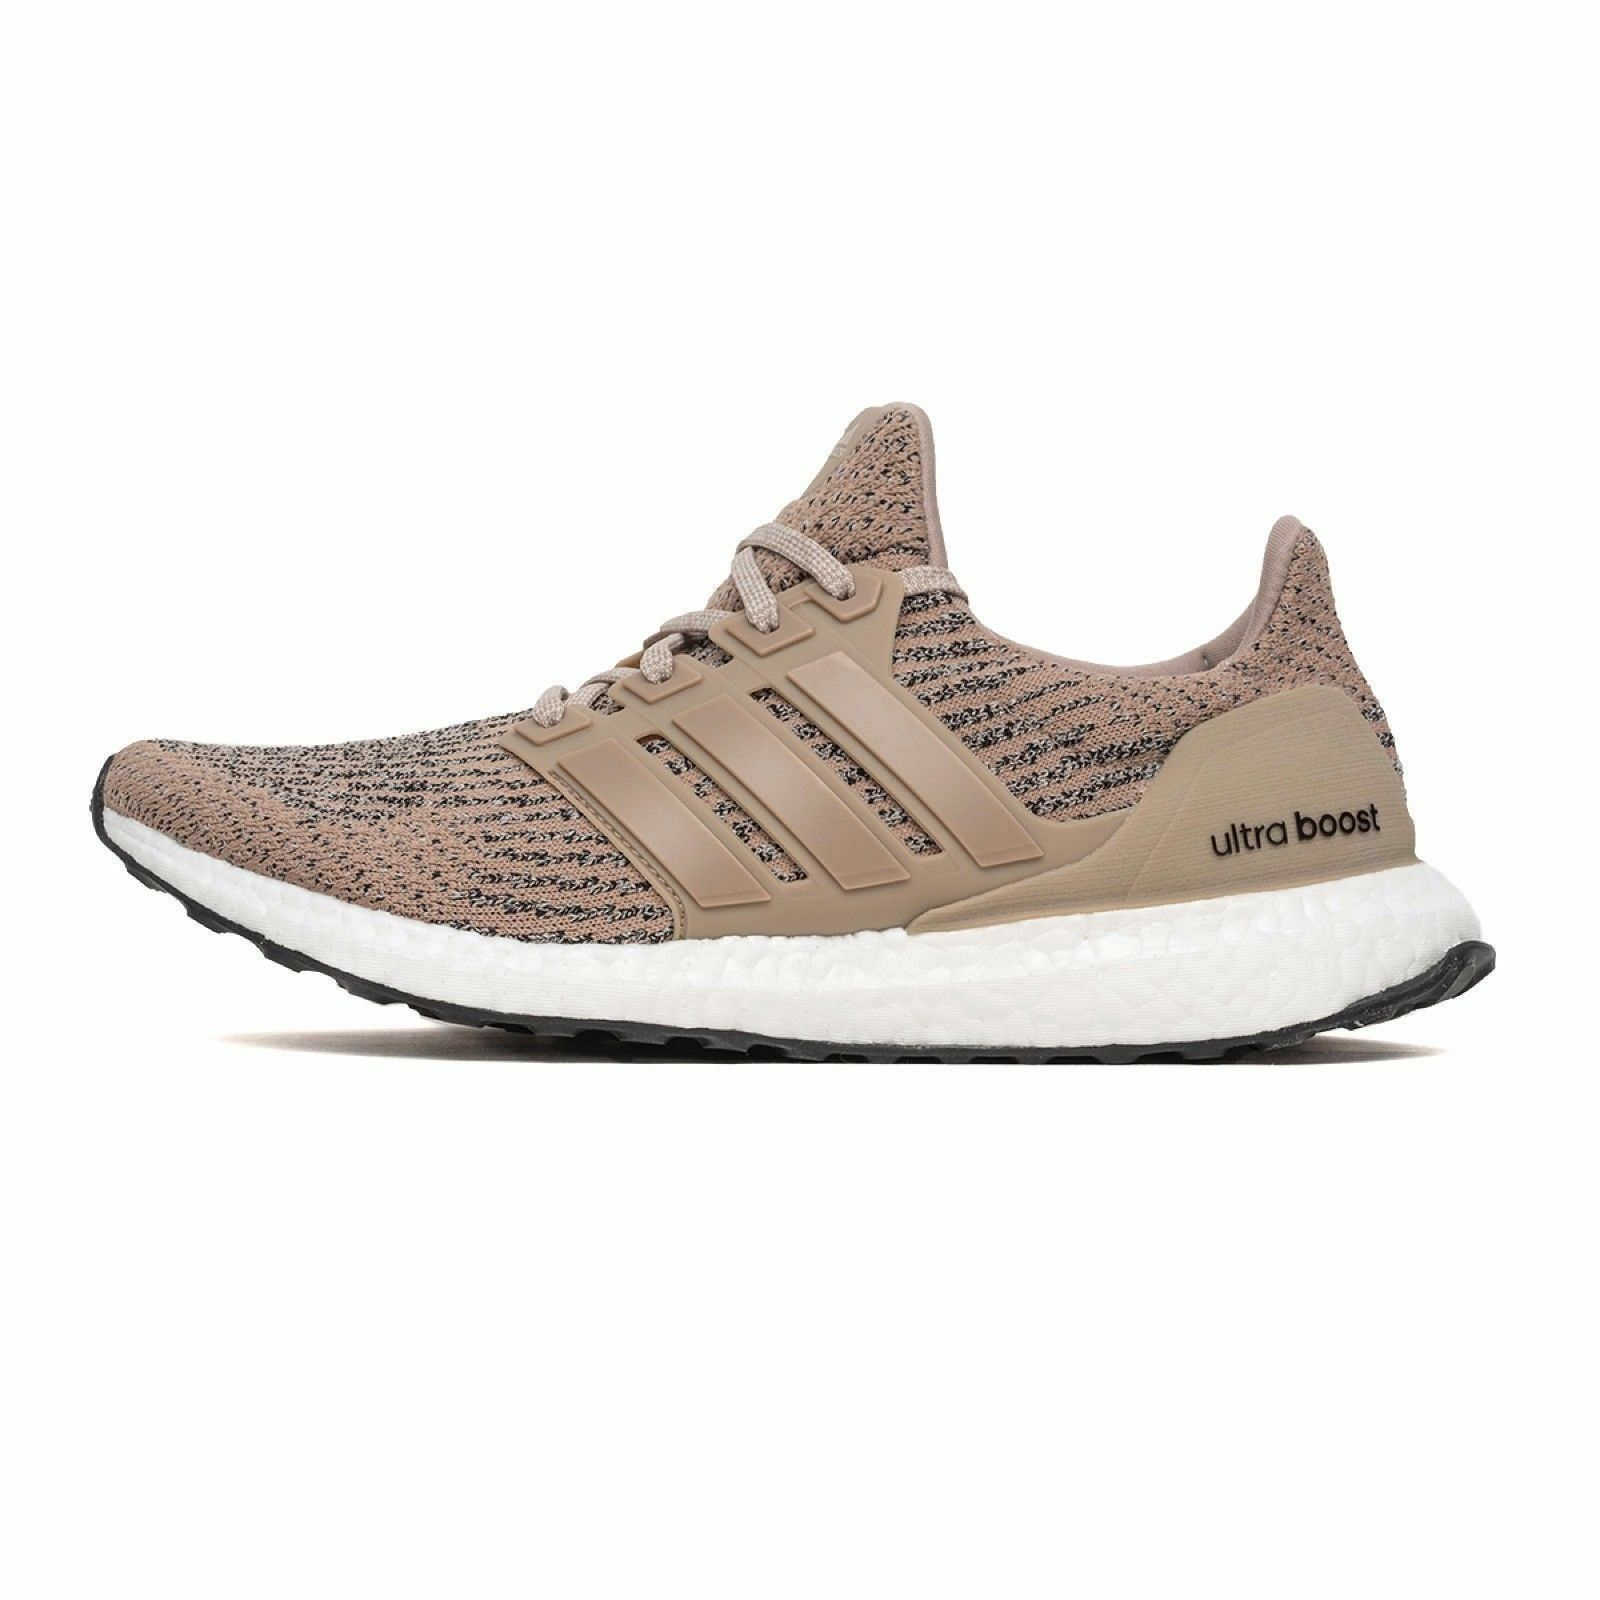 {CG3039} MEN'S ADIDAS ORIGINALS ULTRA BOOST 3.0 RUNNING SHOE TRACE KHAKI NEW